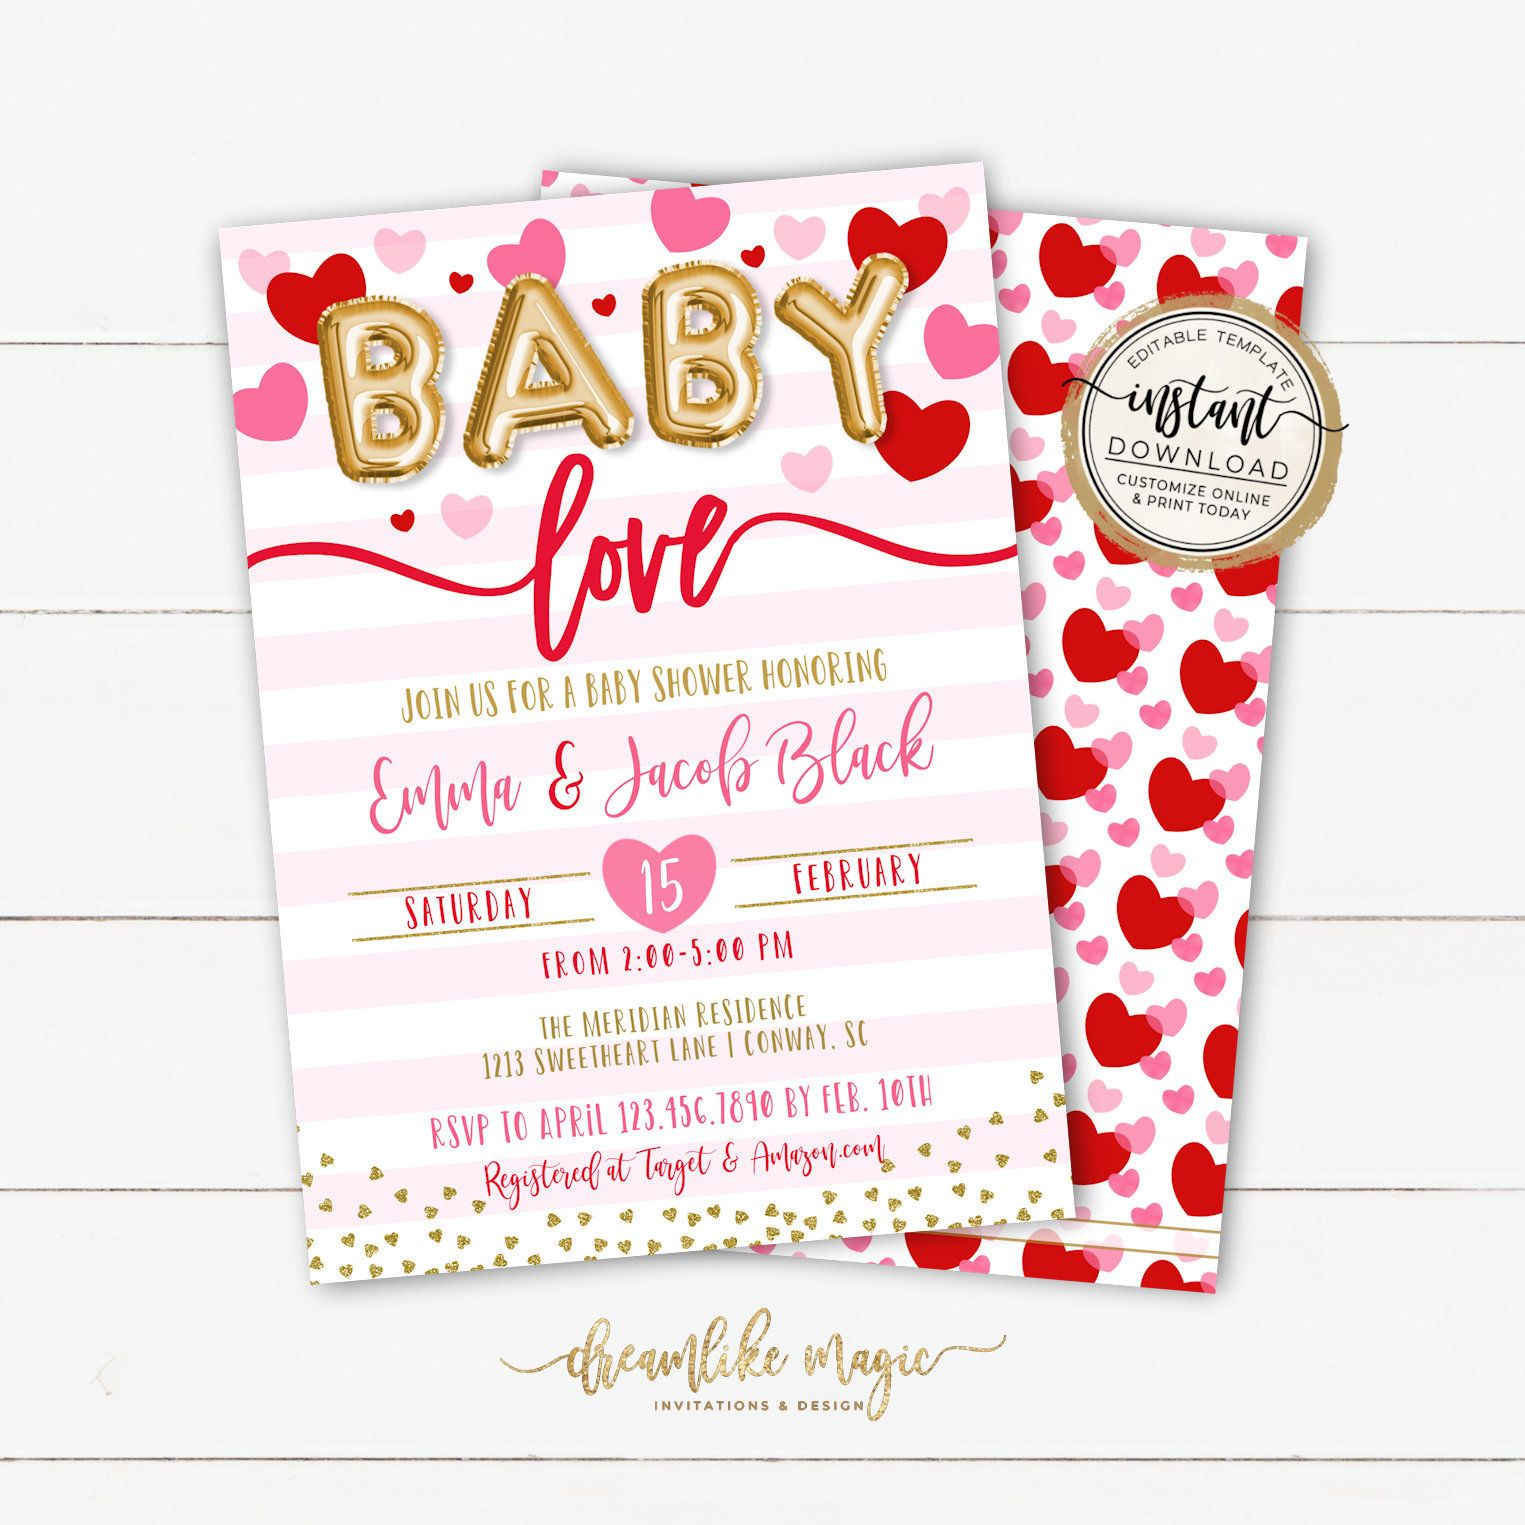 A Little Sweetheart Baby Shower Invitation Editable Template Etsy Valentines Baby Shower Baby Shower Invitations Valentines Day Baby